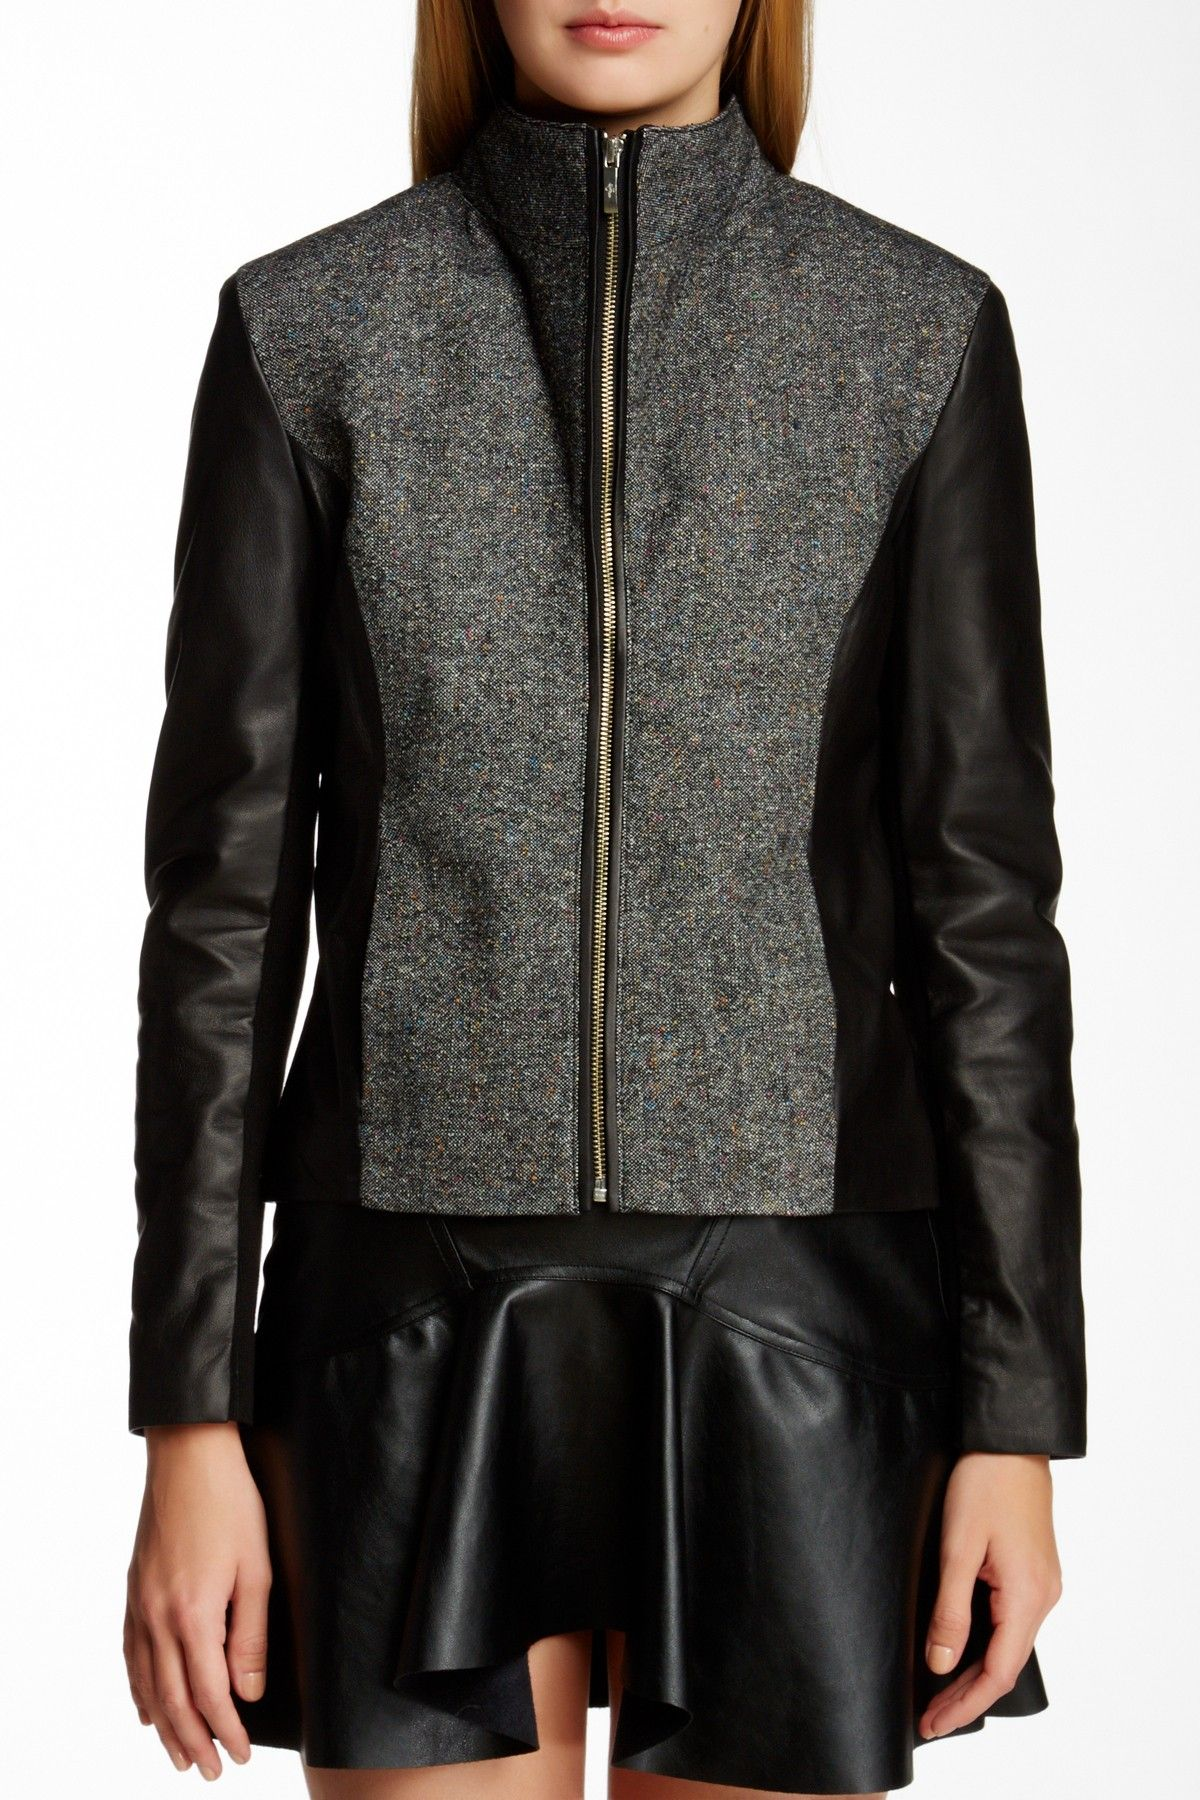 Cole Haan - Genuine Leather & Wool Blend Jacket is now 50% off. Free Shipping on orders over $100.